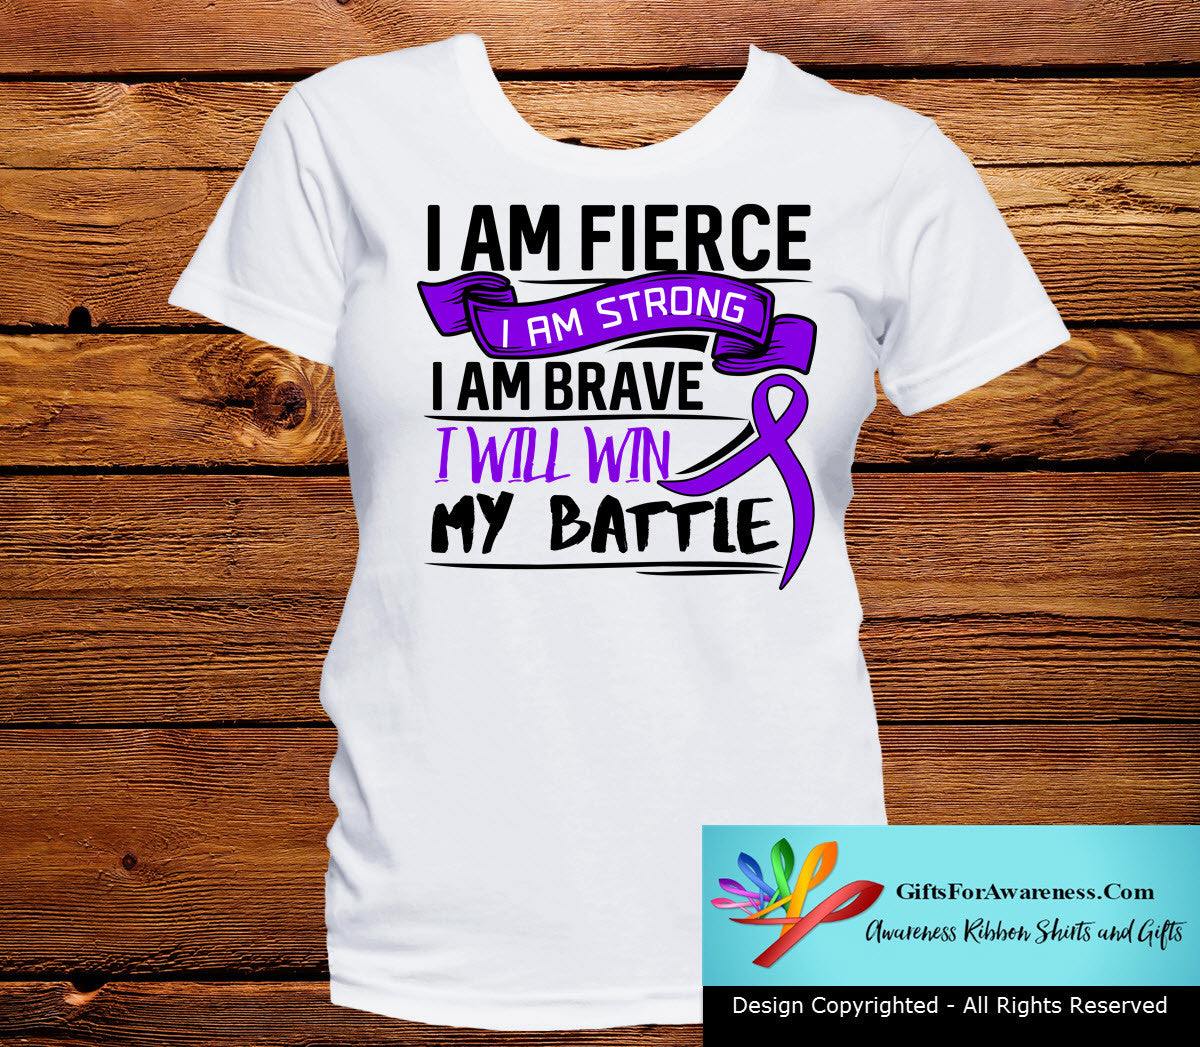 GIST Cancer I Am Fierce Strong and Brave Shirts - GiftsForAwareness